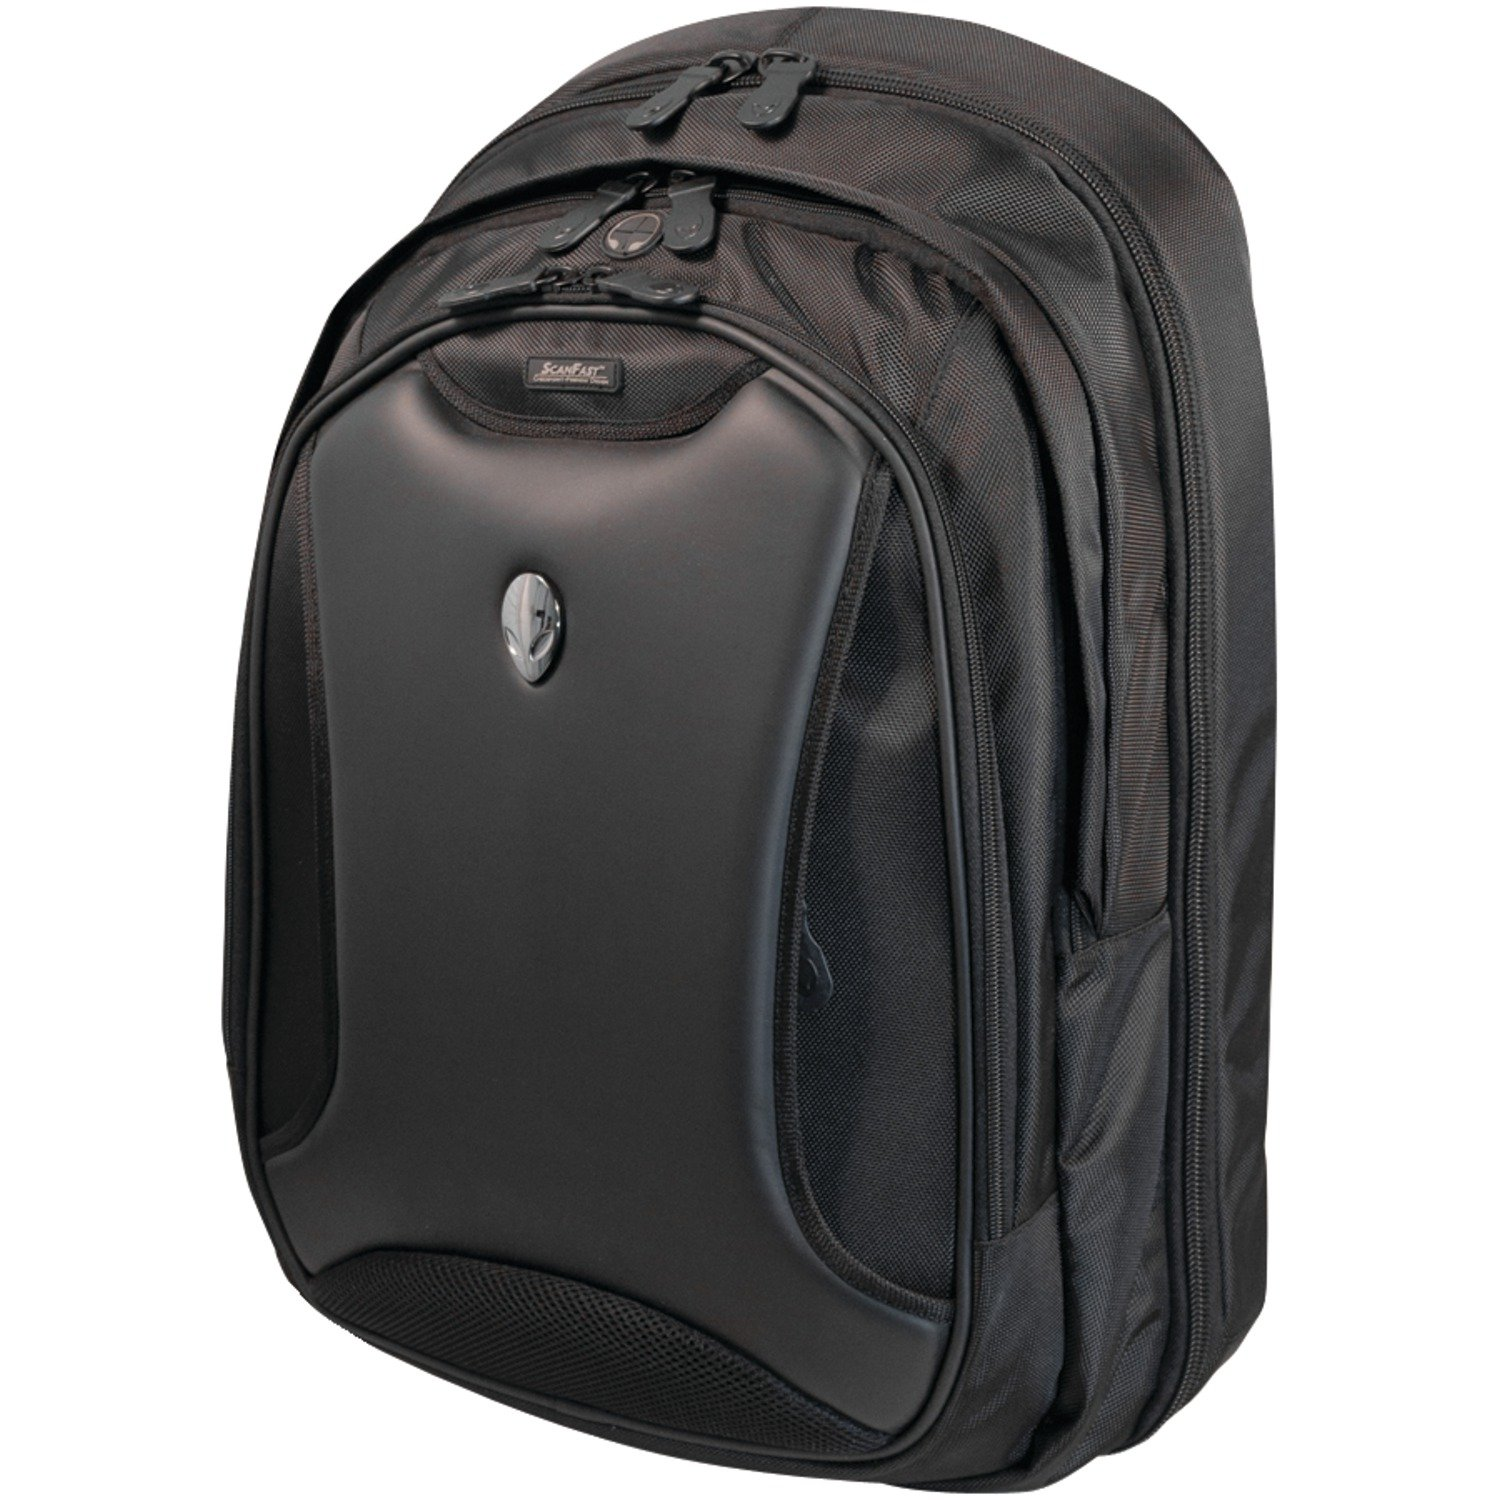 Alienware Awbp18 Orion Notebook Backpack With Scanfast